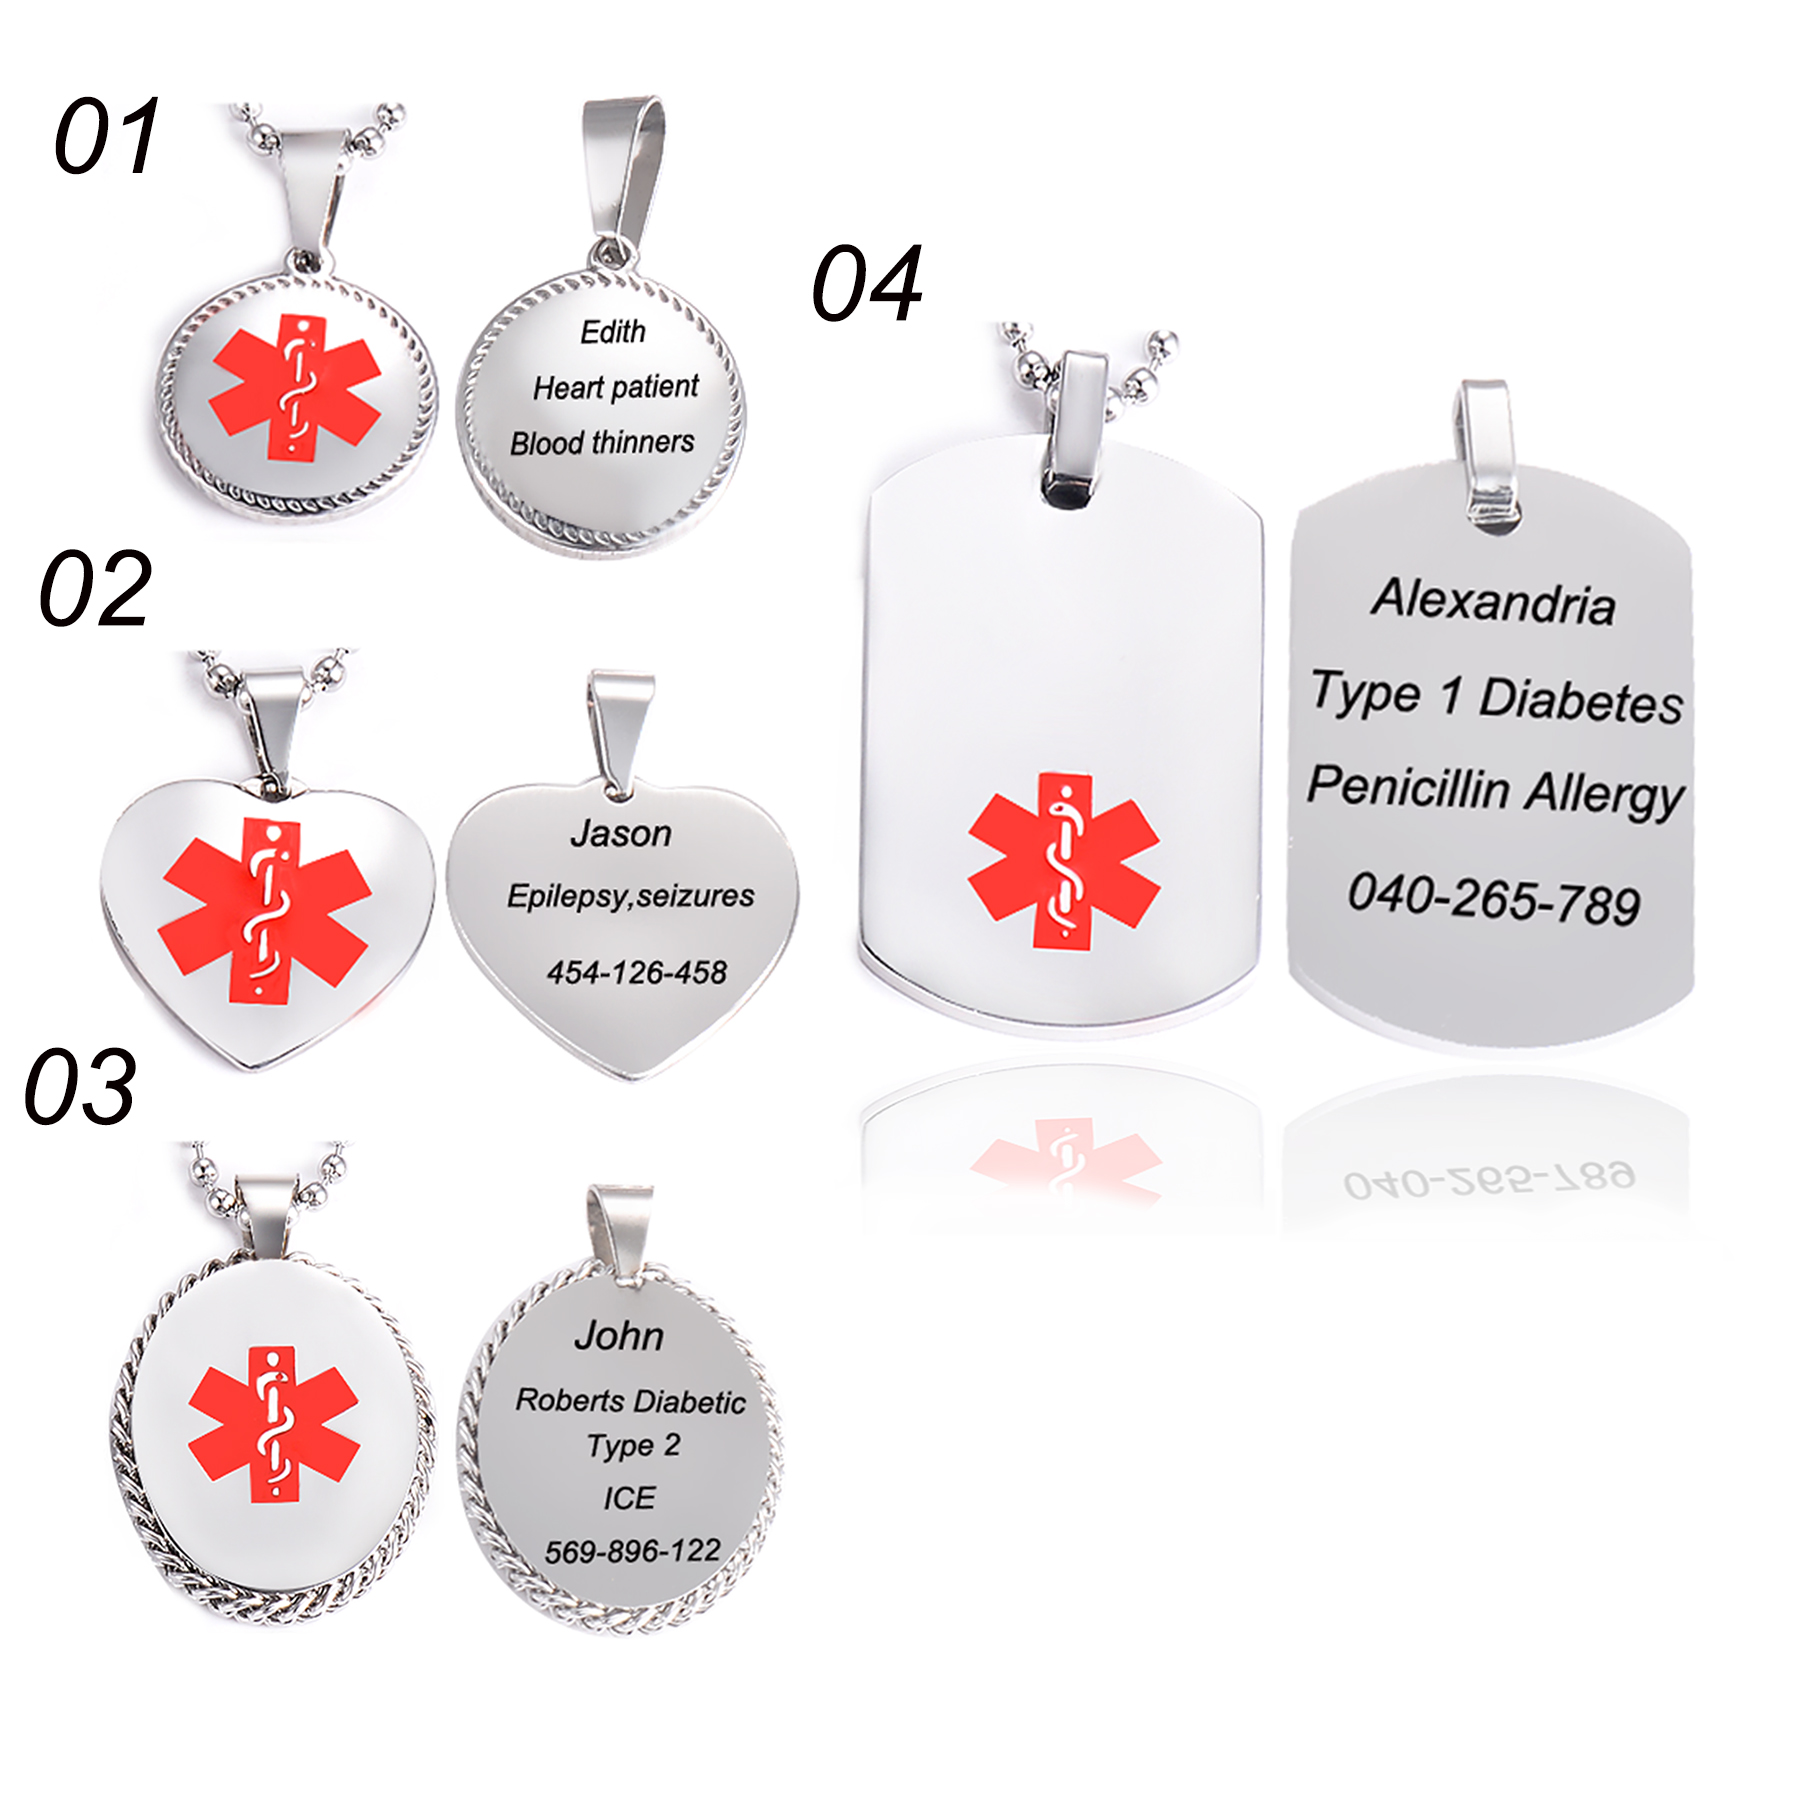 TYPE 1 DIABETES Unisex Medical Alert ID Pendant Necklace Chain Oval Tag Jewlery